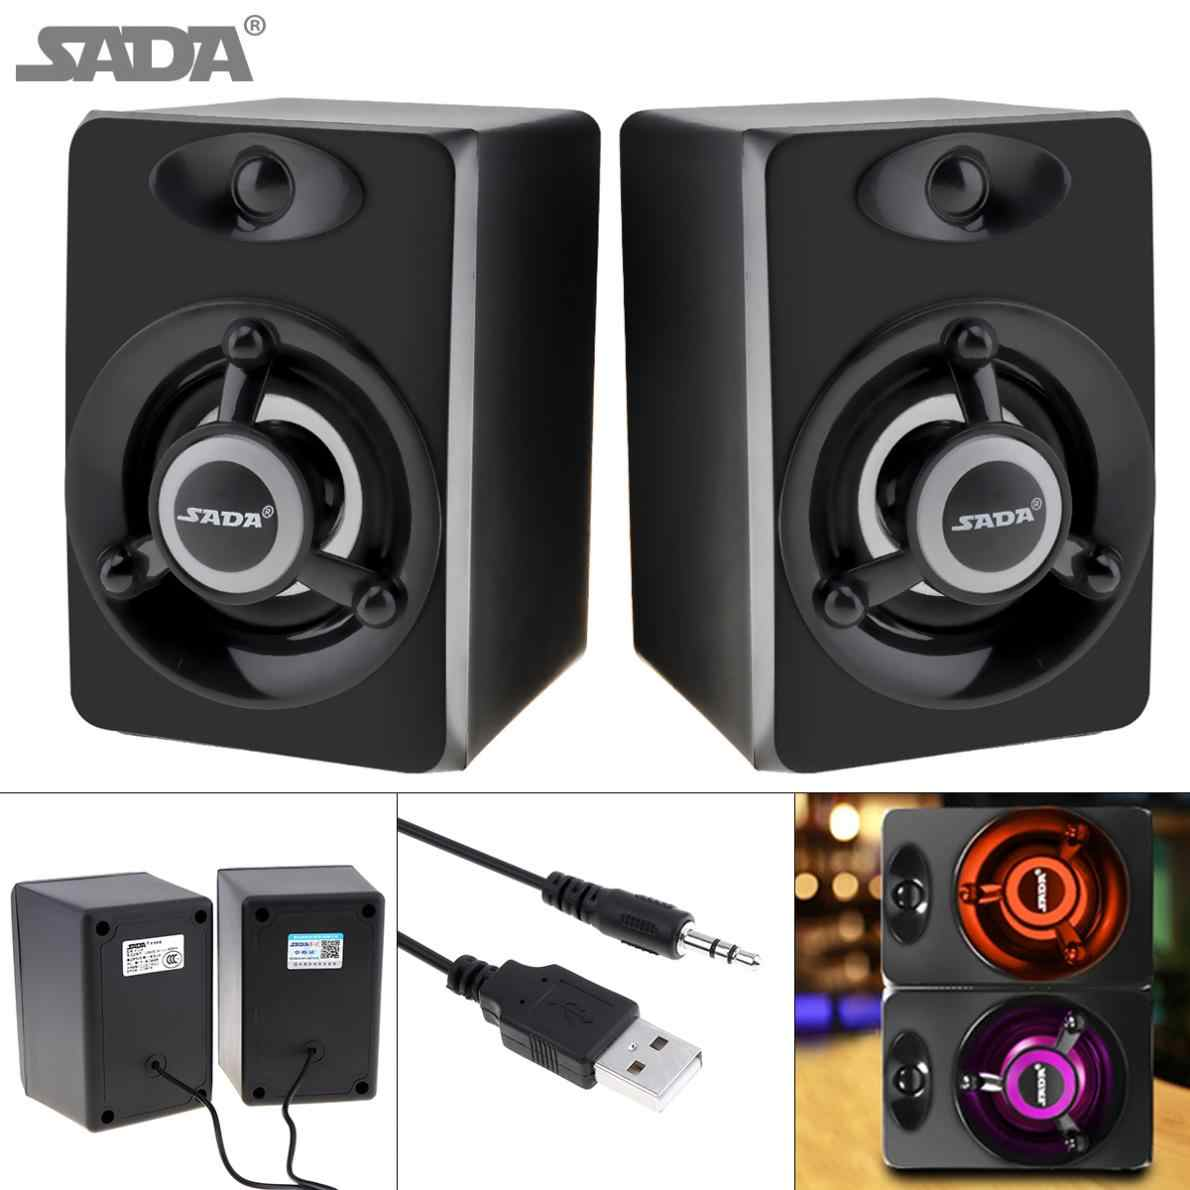 SADA V-118 USB2.0 Subwoofer Komputer Speaker dengan 3.5 Mm Audio Plug dan USB Power Plug untuk Desktop PC Laptop MP3 ponsel